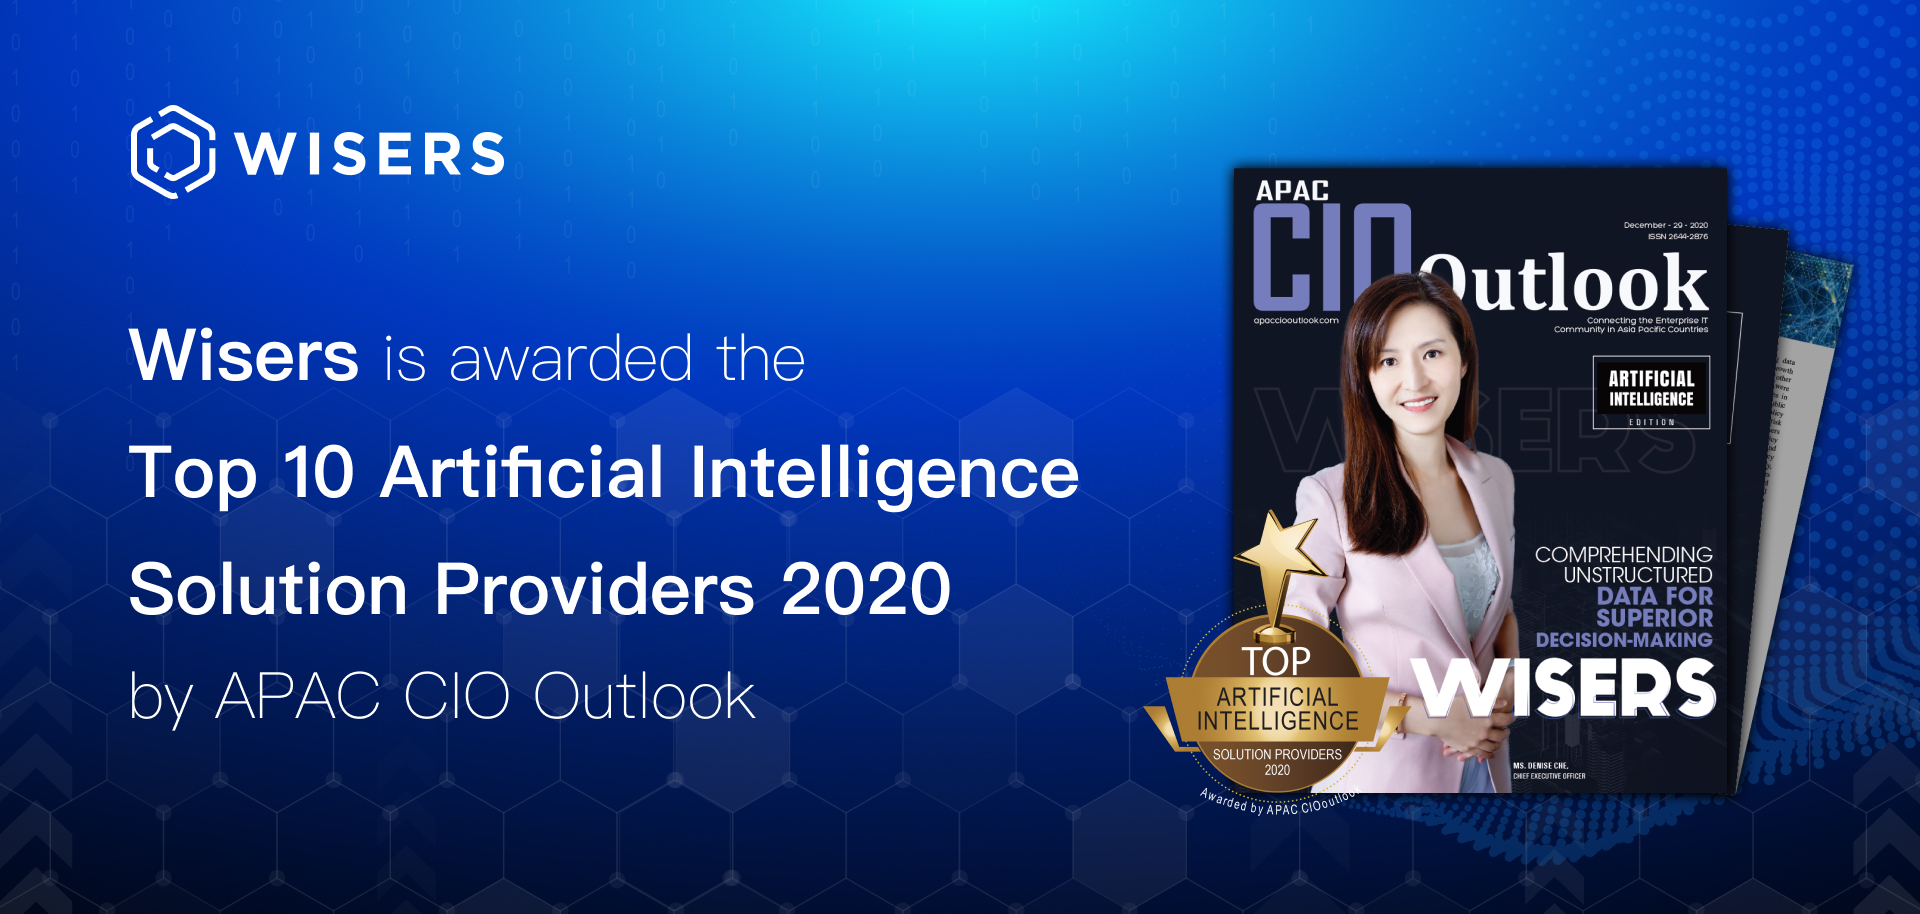 Wisers Information is Crowned One of APAC CIO Outlook's Top 10 Artificial Intelligence Solution Providers in 2020